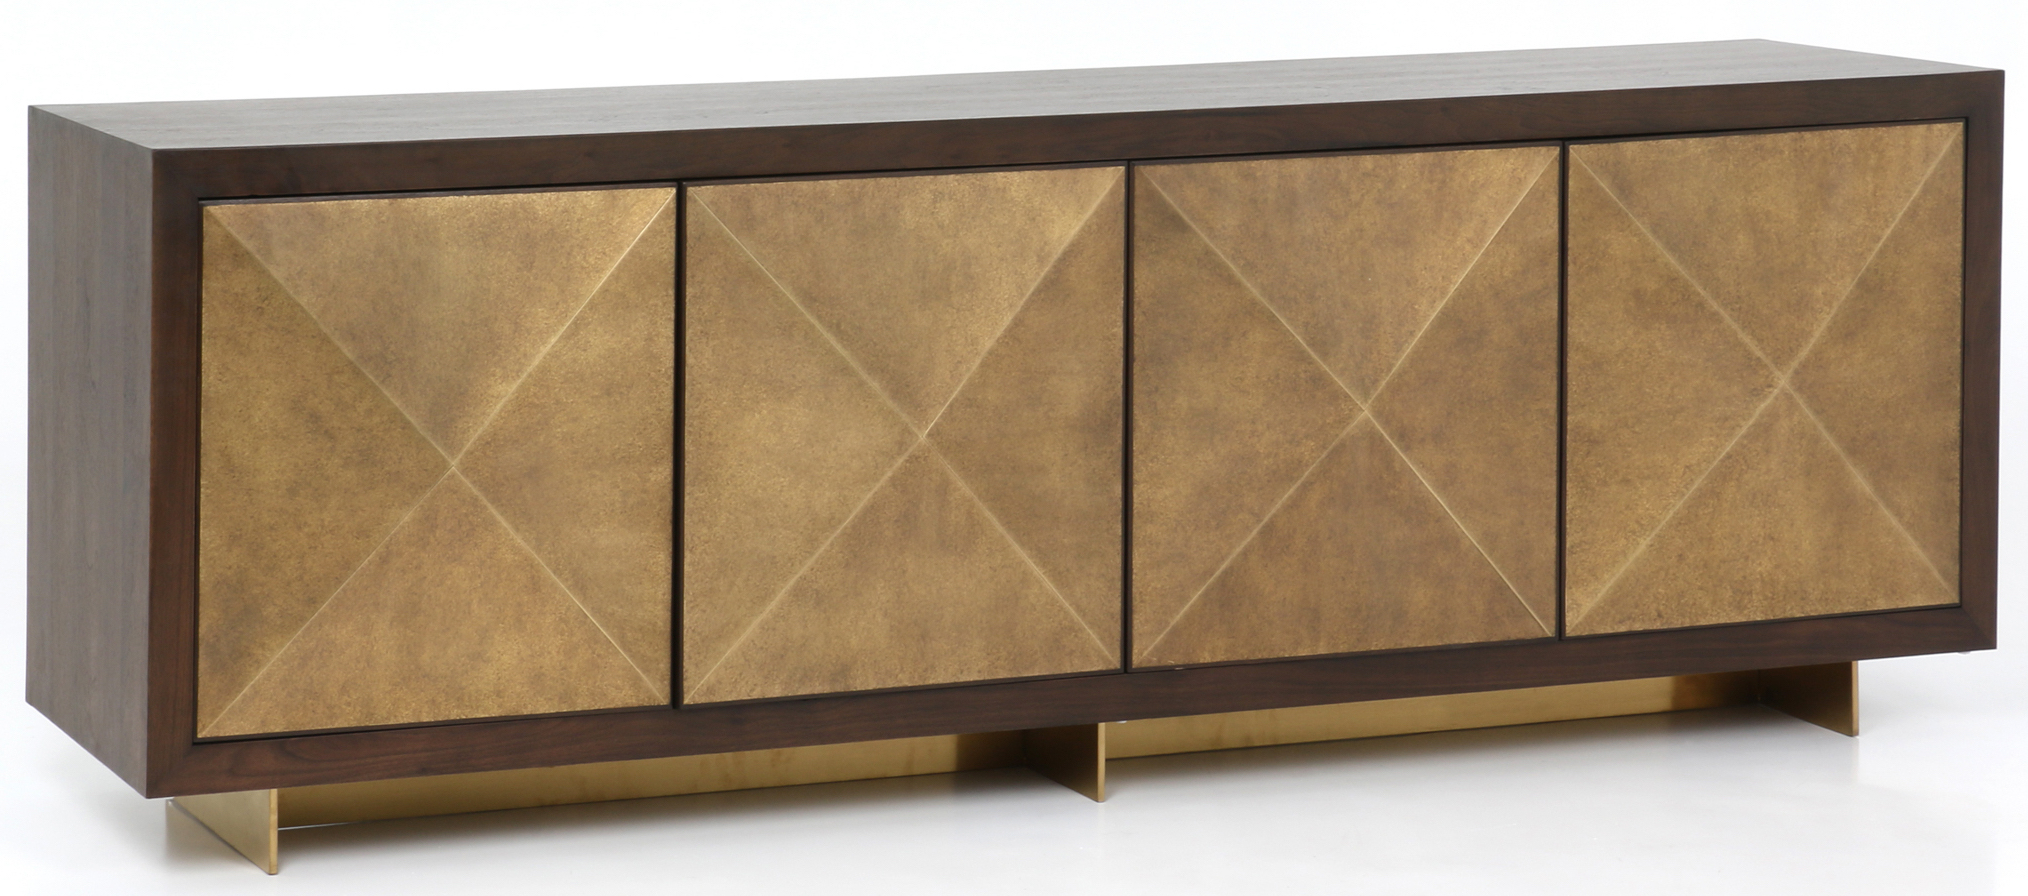 Cabinets, Consoles & Sofa Tables | Htgt Furniture Inside Gunmetal Perforated Brass Media Console Tables (View 14 of 20)